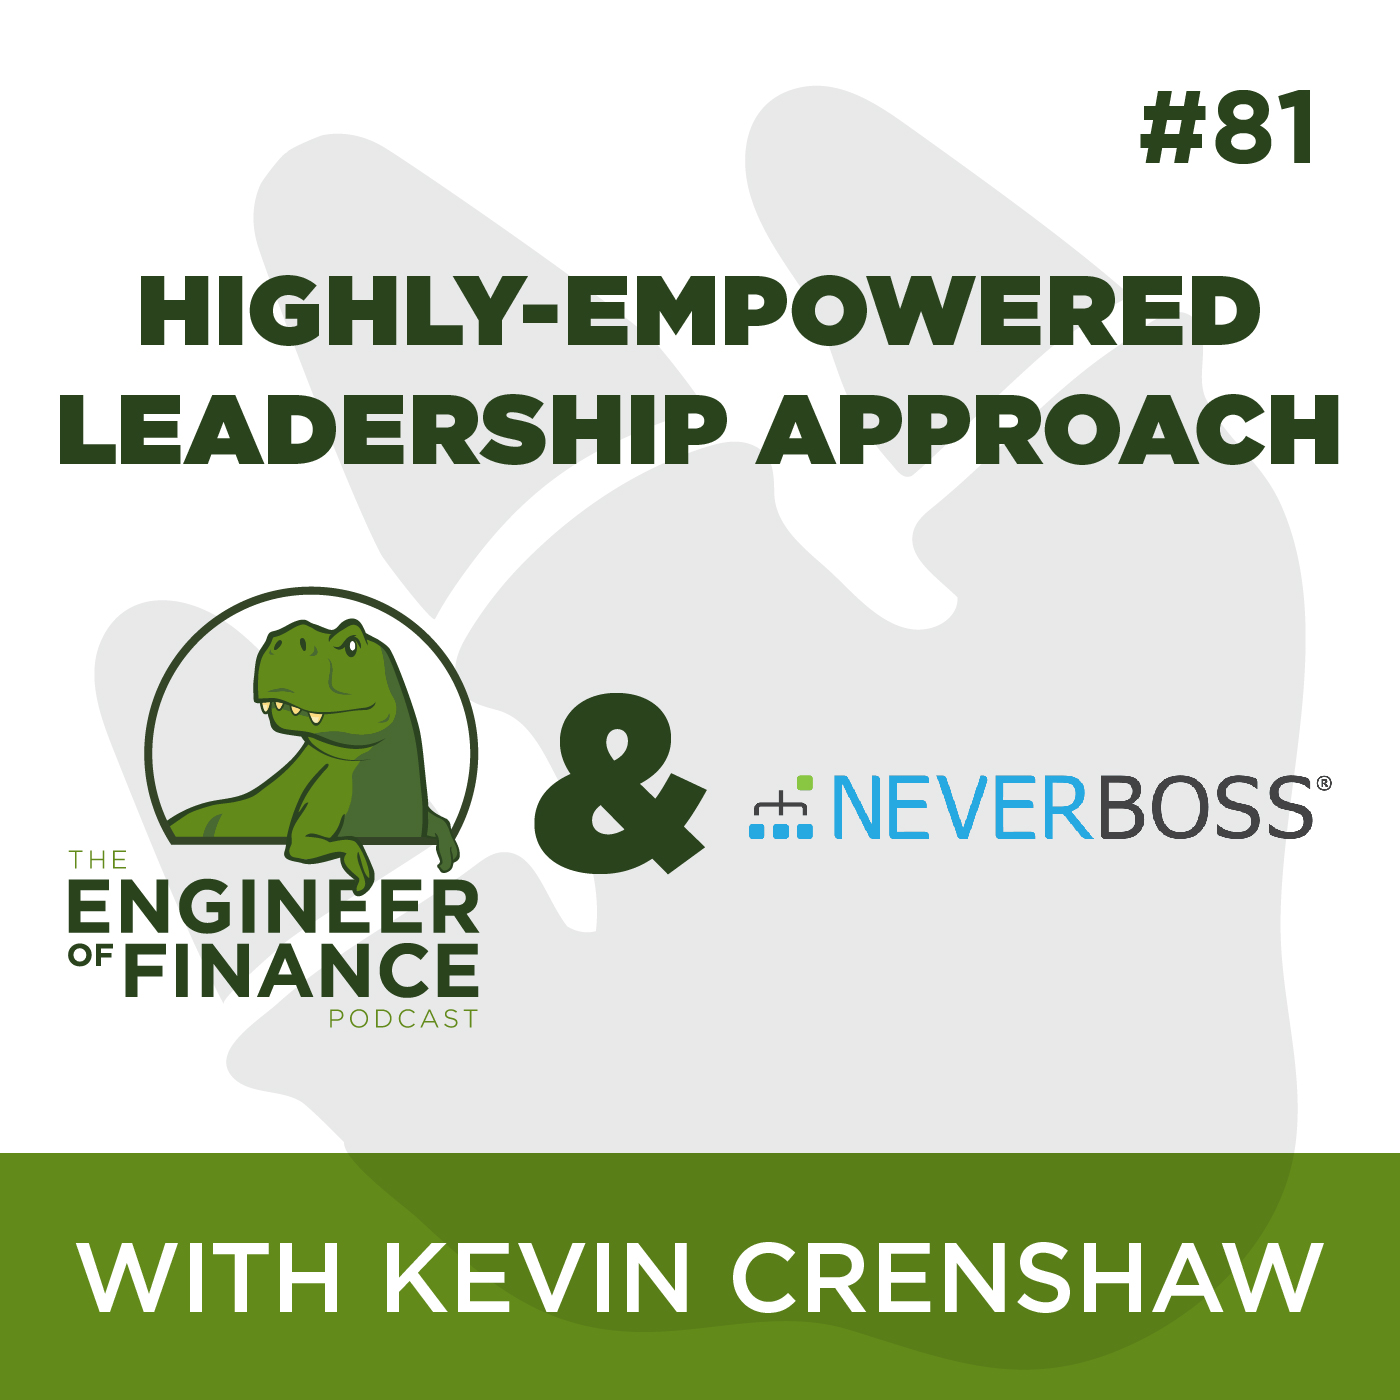 Highly-Empowered Leadership Approach with Kevin Crenshaw – Episode 81